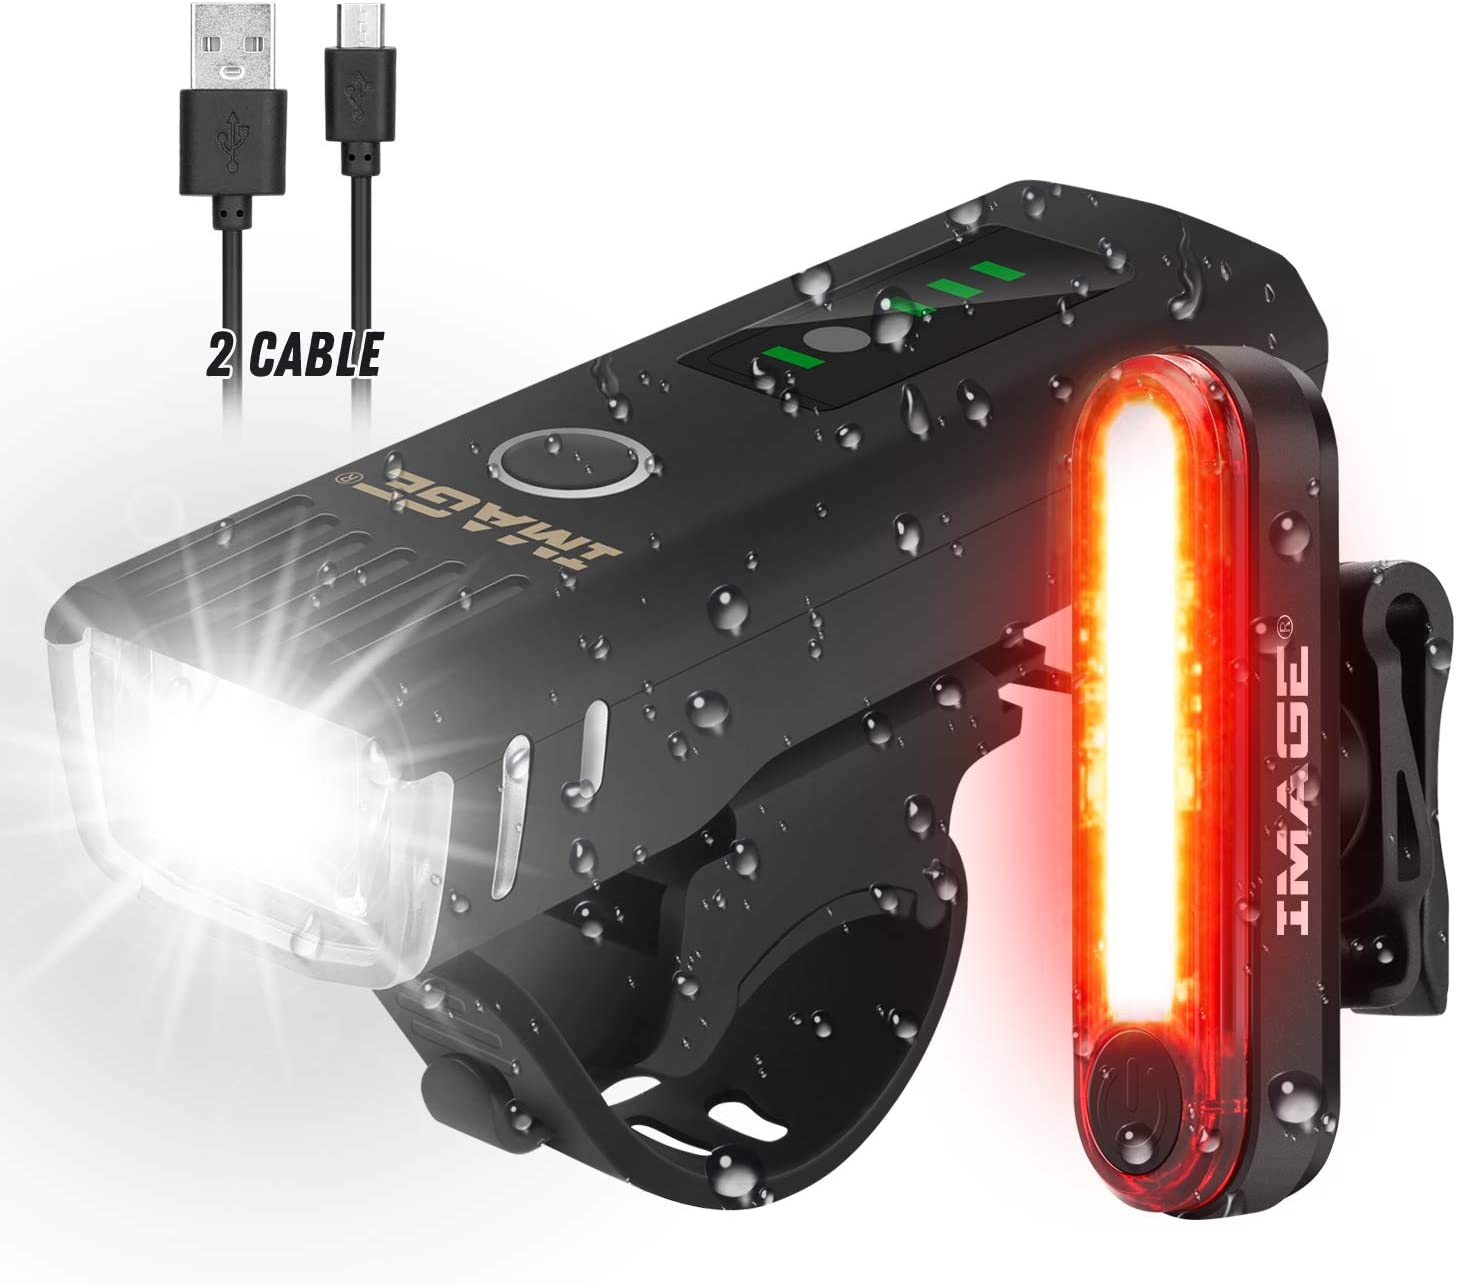 Bike Light Set,USB Re-Chargeable Bicycle Light Set with Super Bright Headlights and Free Rear Lights Waterproof LED Bicycle Light Taillight Safety Lights for Cycling Camping(2 USB cables Included)